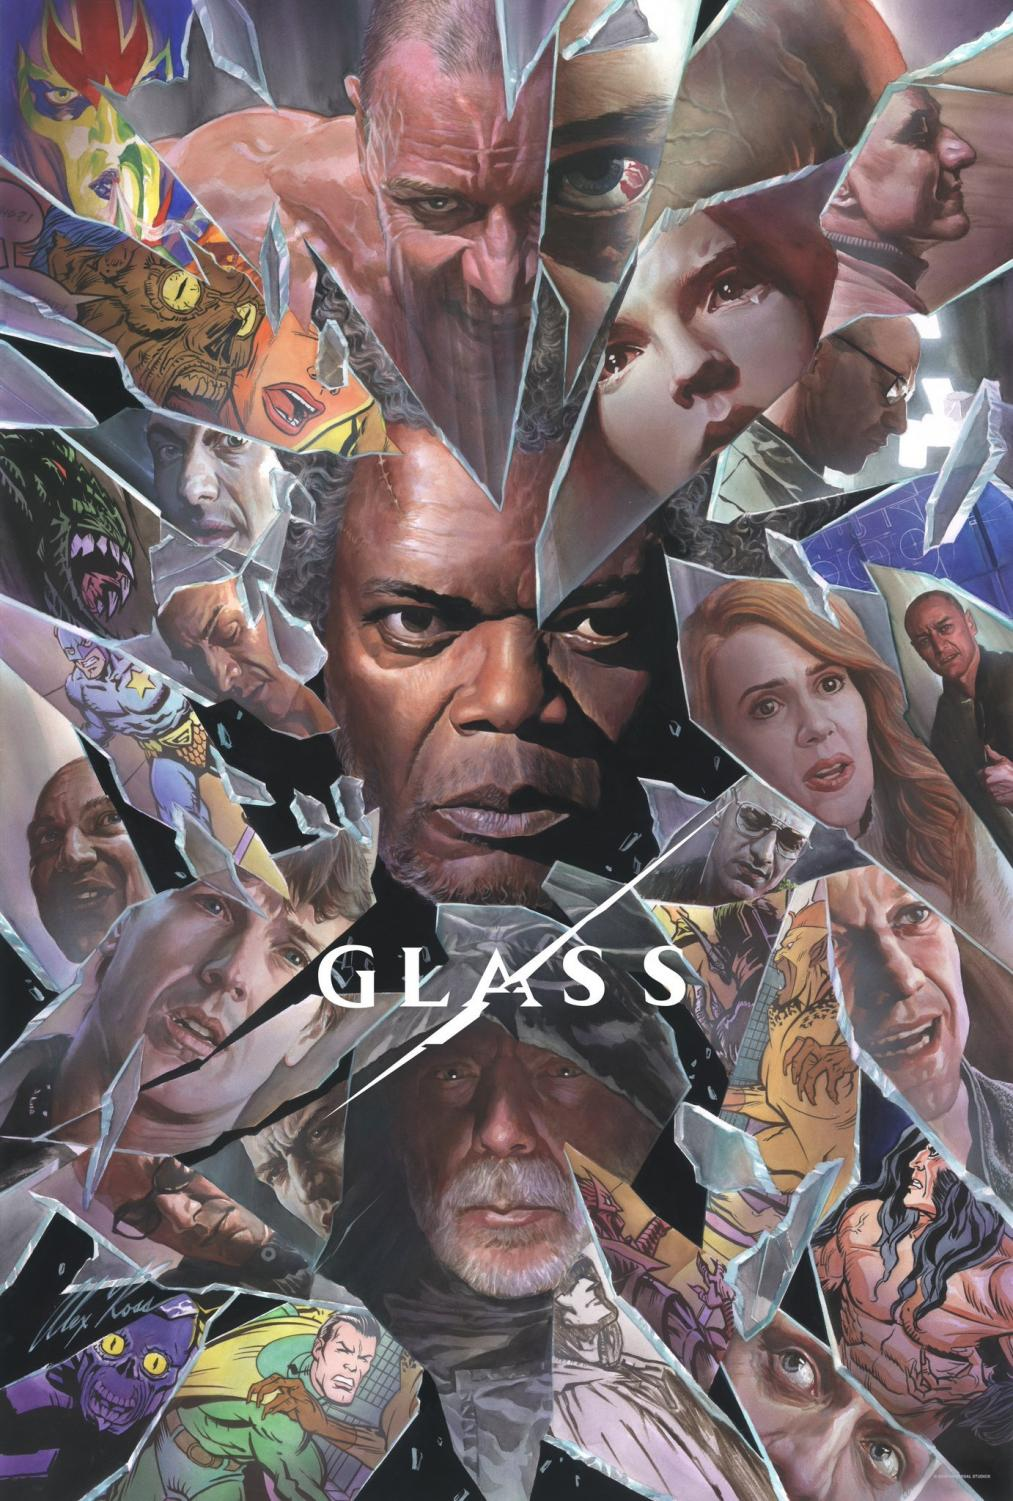 Glass poster courtesy of Blumhouse and M. Night Shyamalan